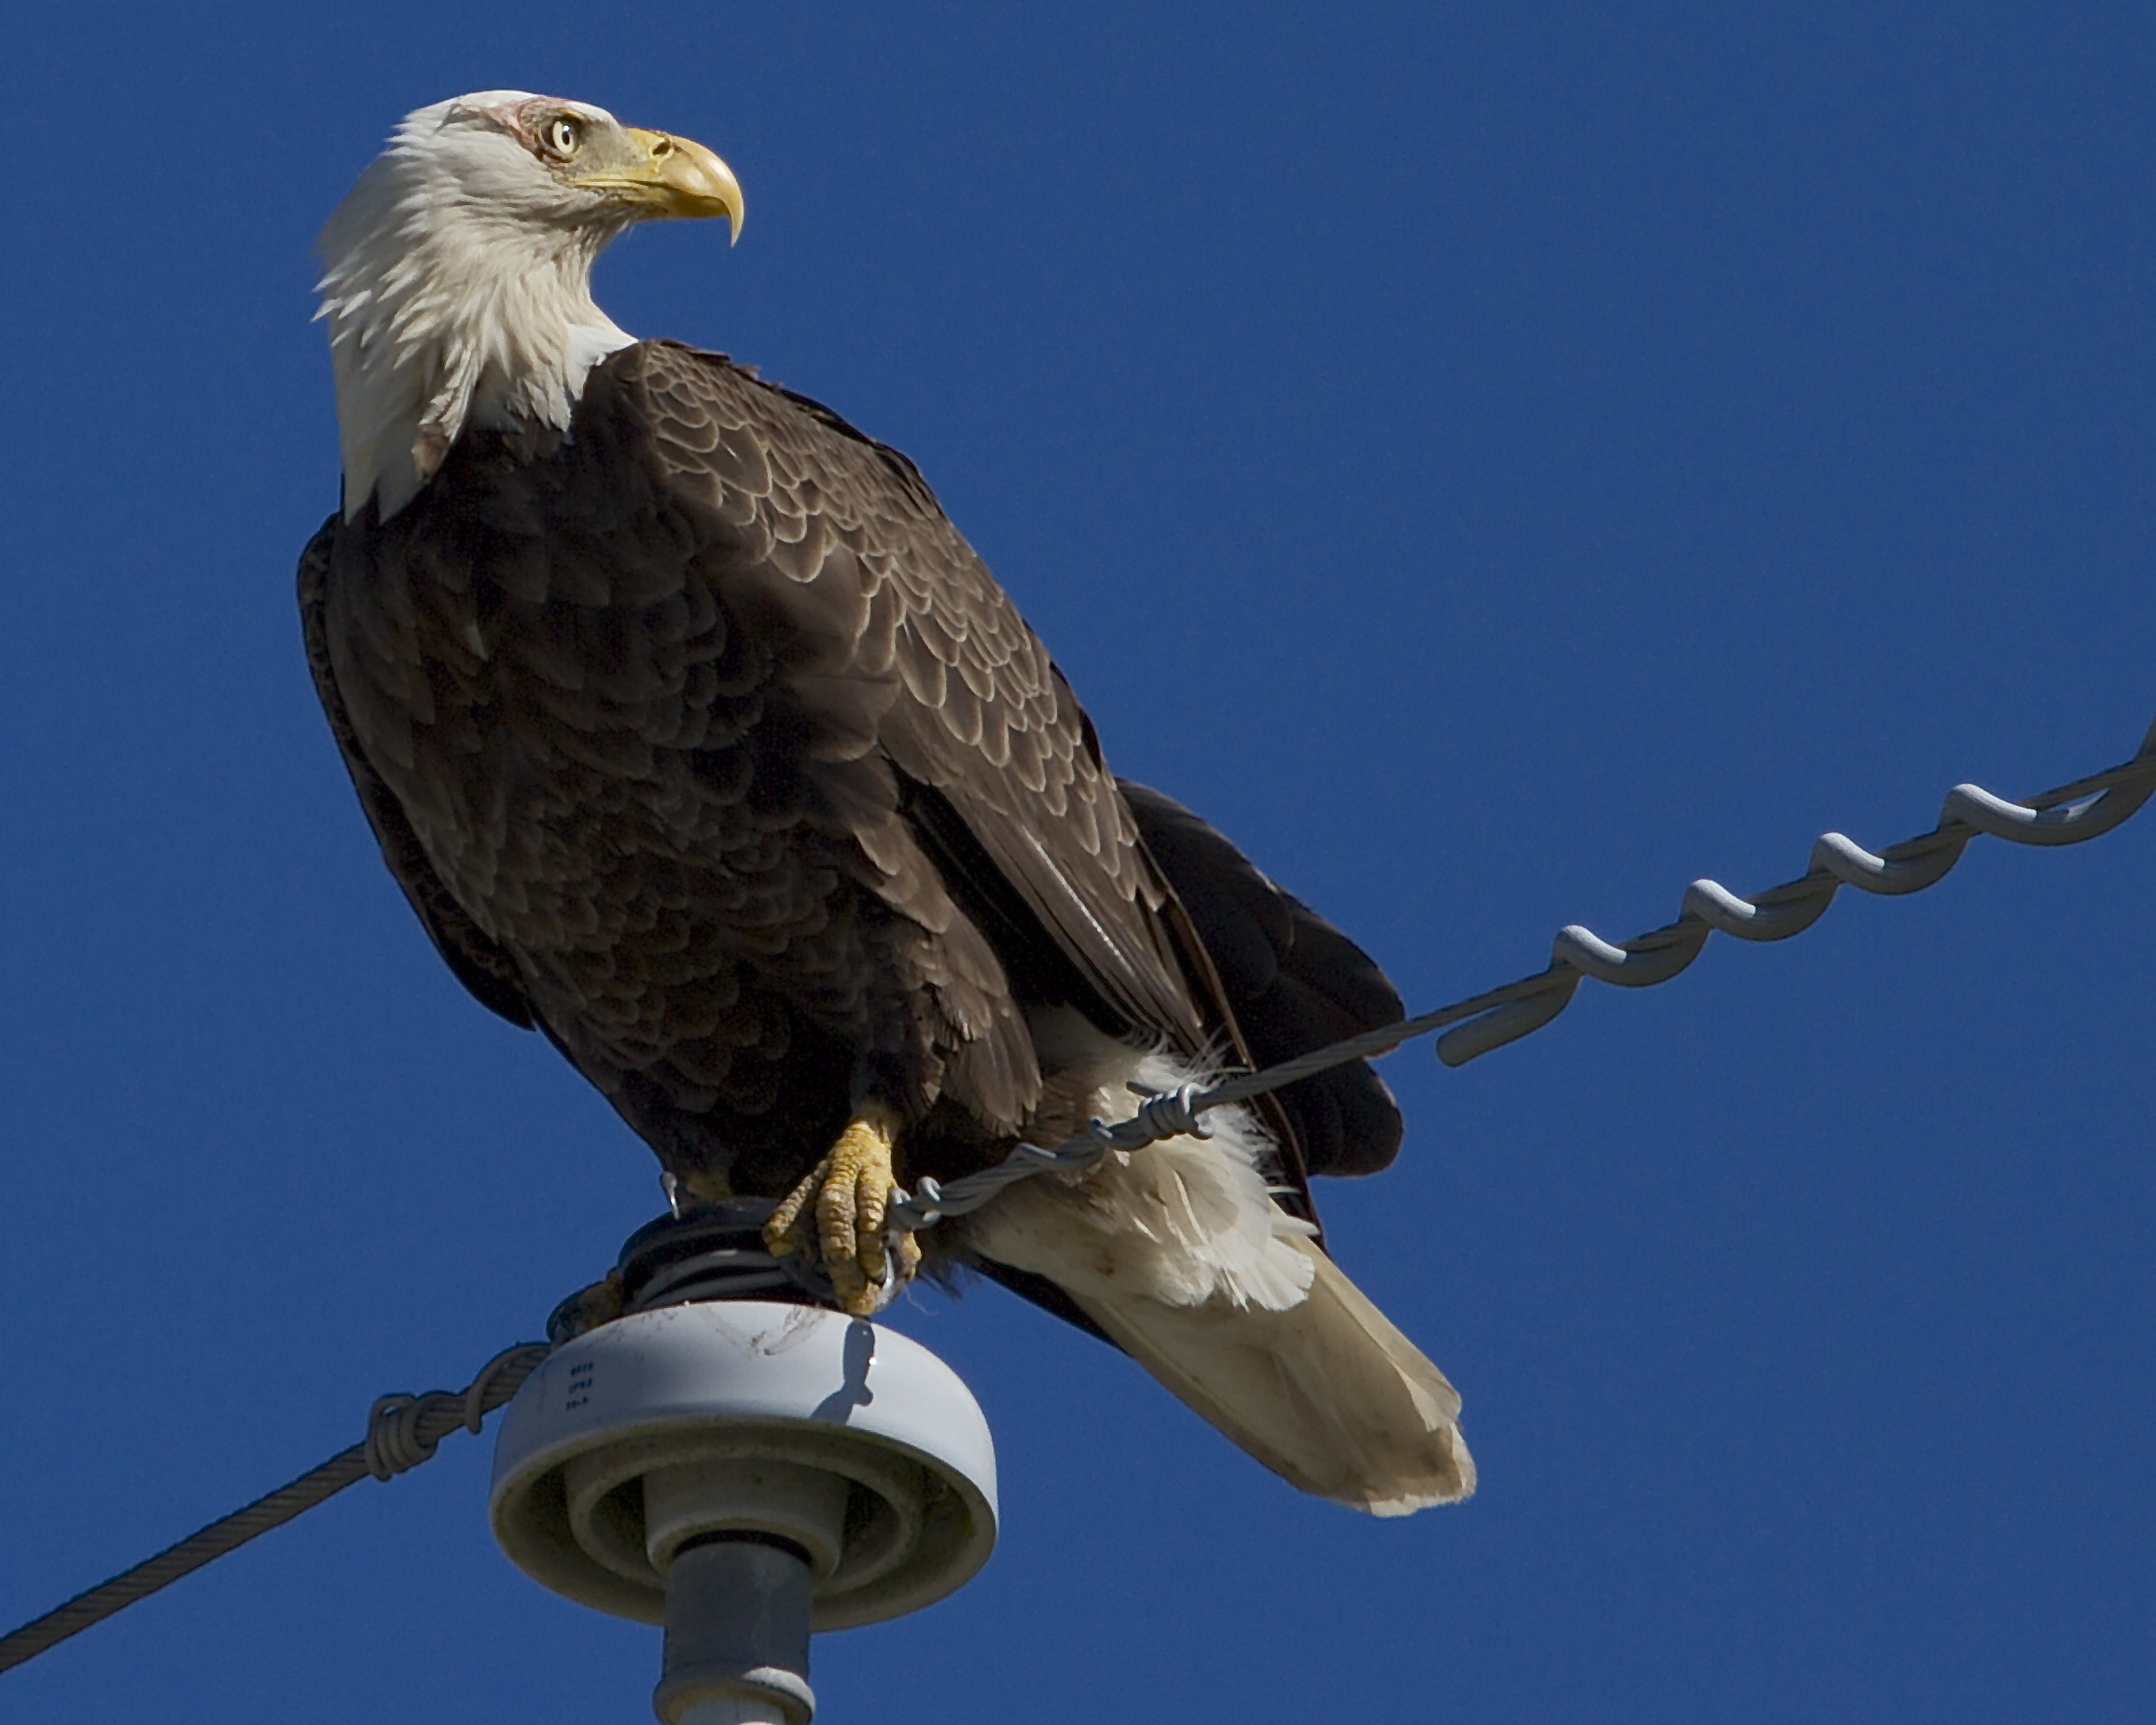 Sitting proudly atop the pole, the Eagle shows signs of a recent aerial battle around the eye and neck.